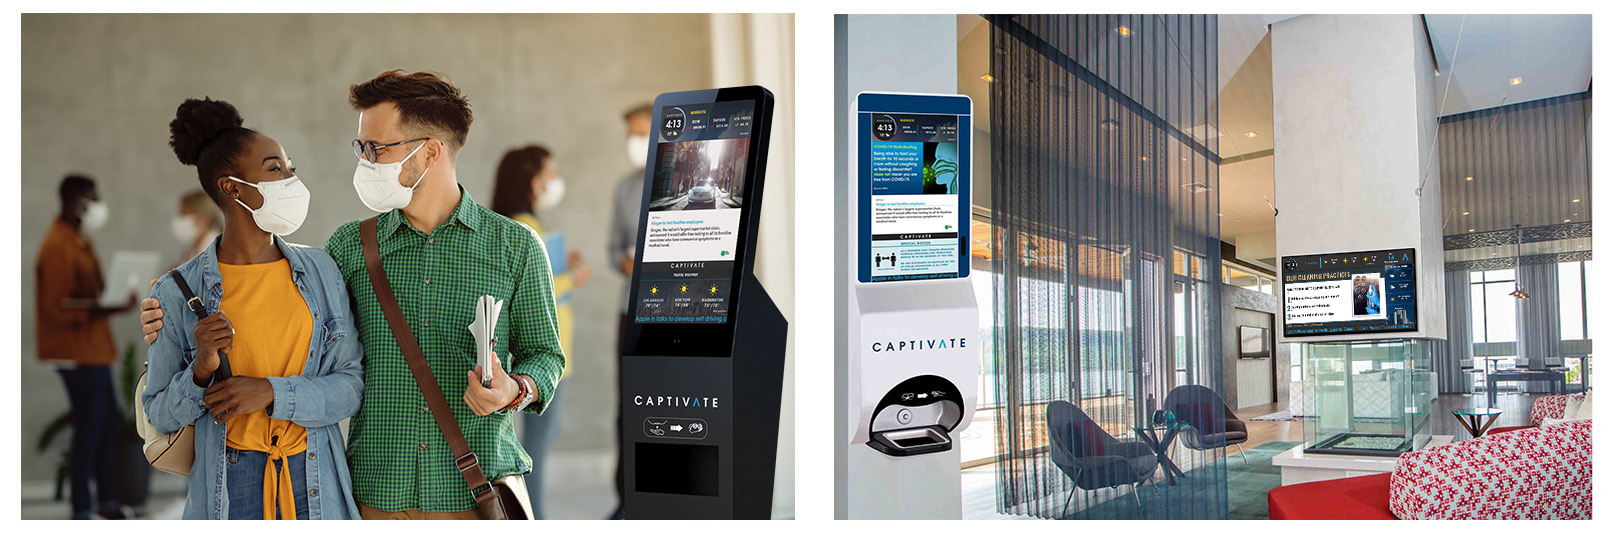 Captivate Campus | Captivate_Clean | Keep College Students Safe On Campus